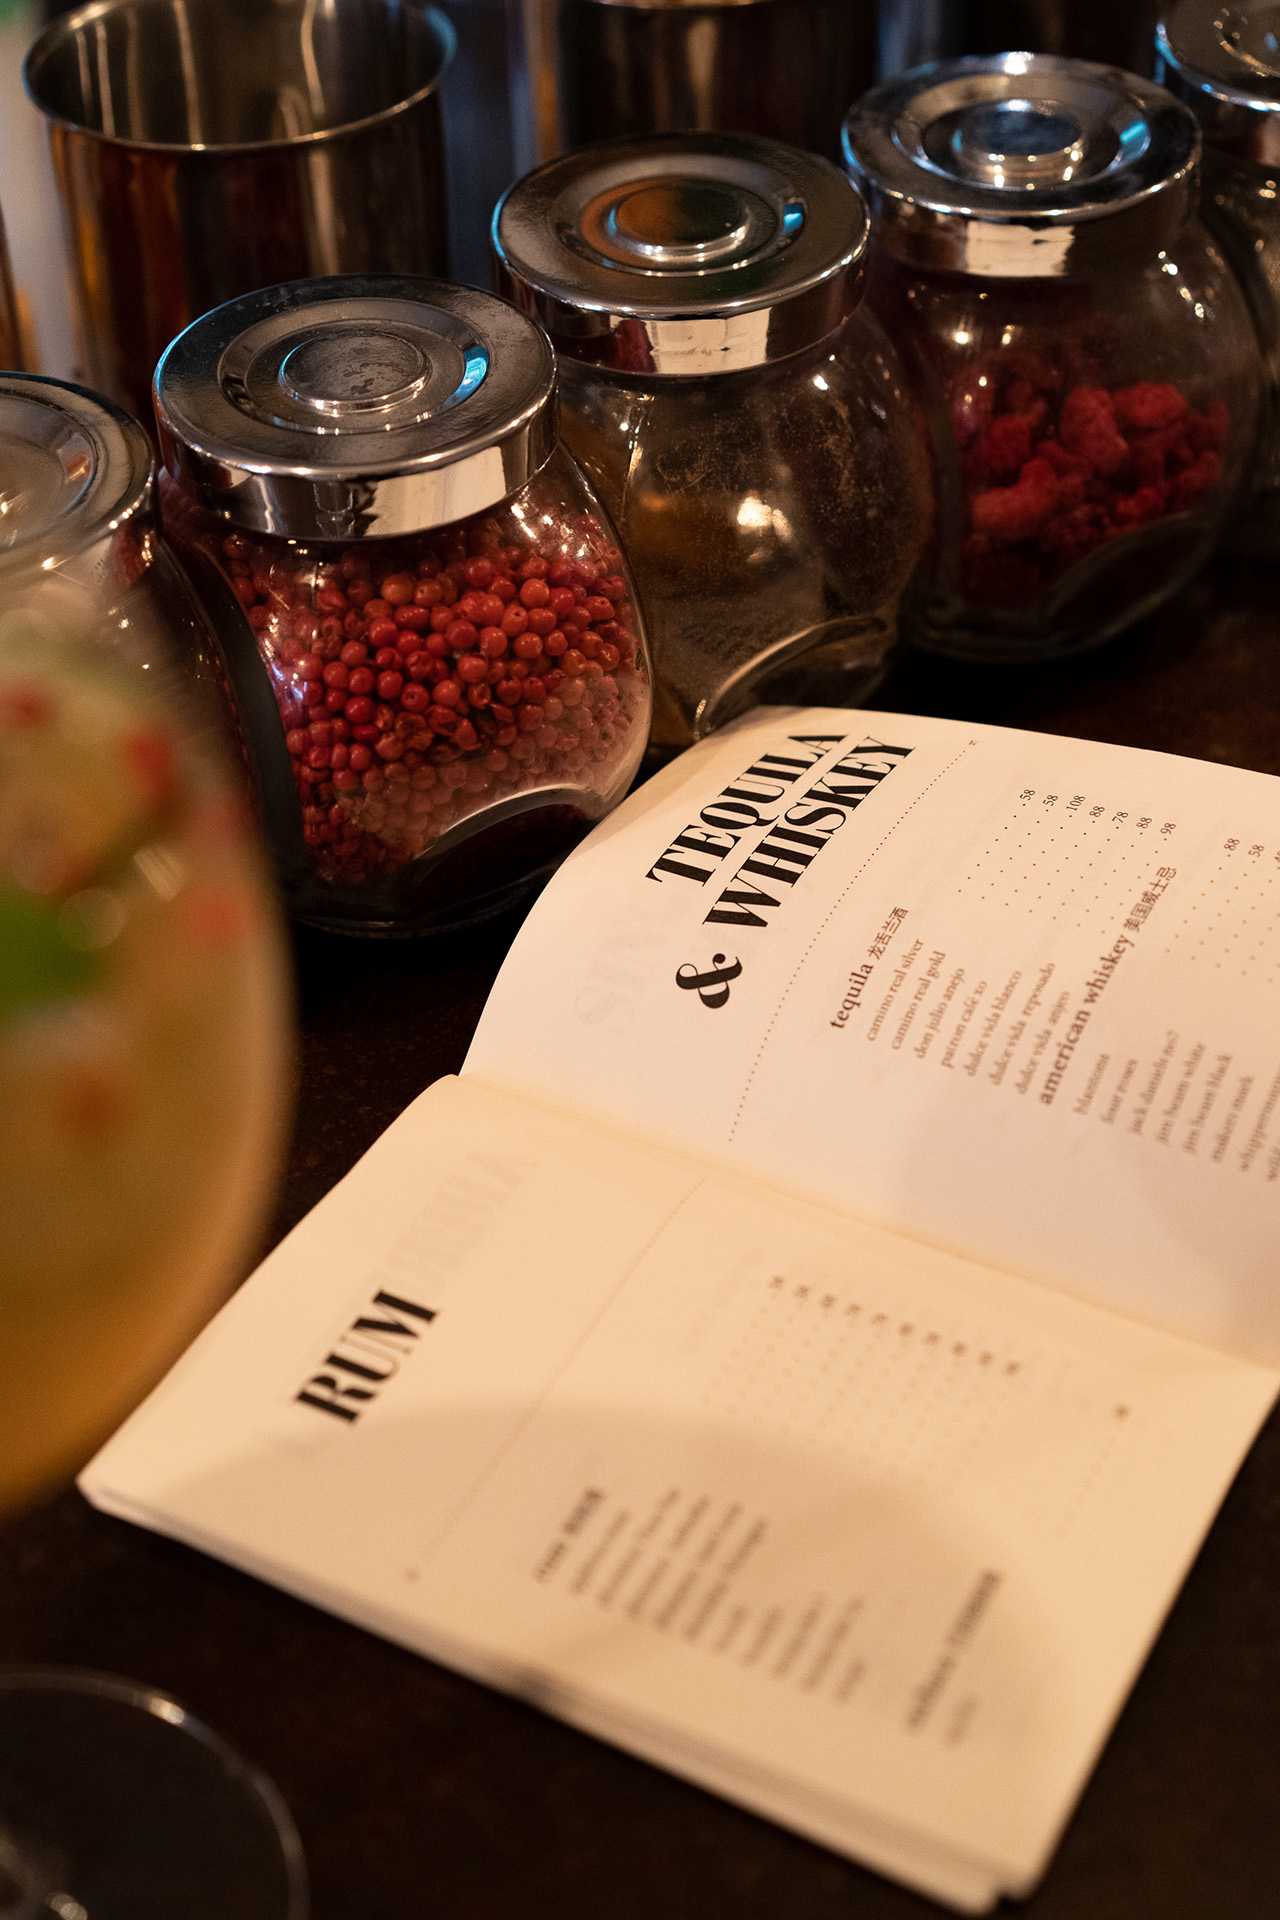 A comprehensive drink and cocktail menu.